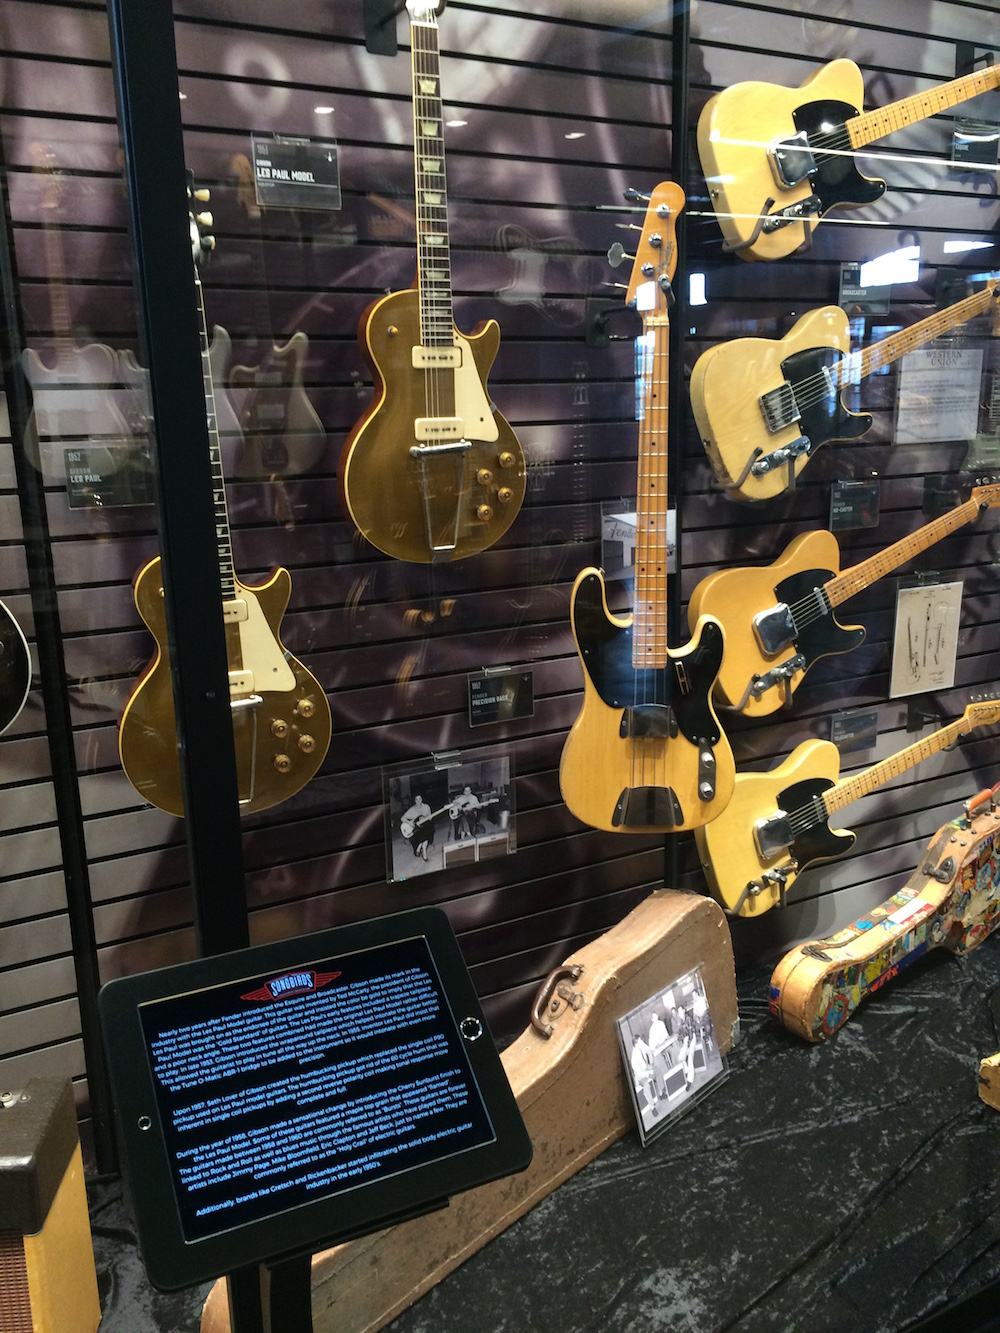 iPads teach you about the guitars in the displays